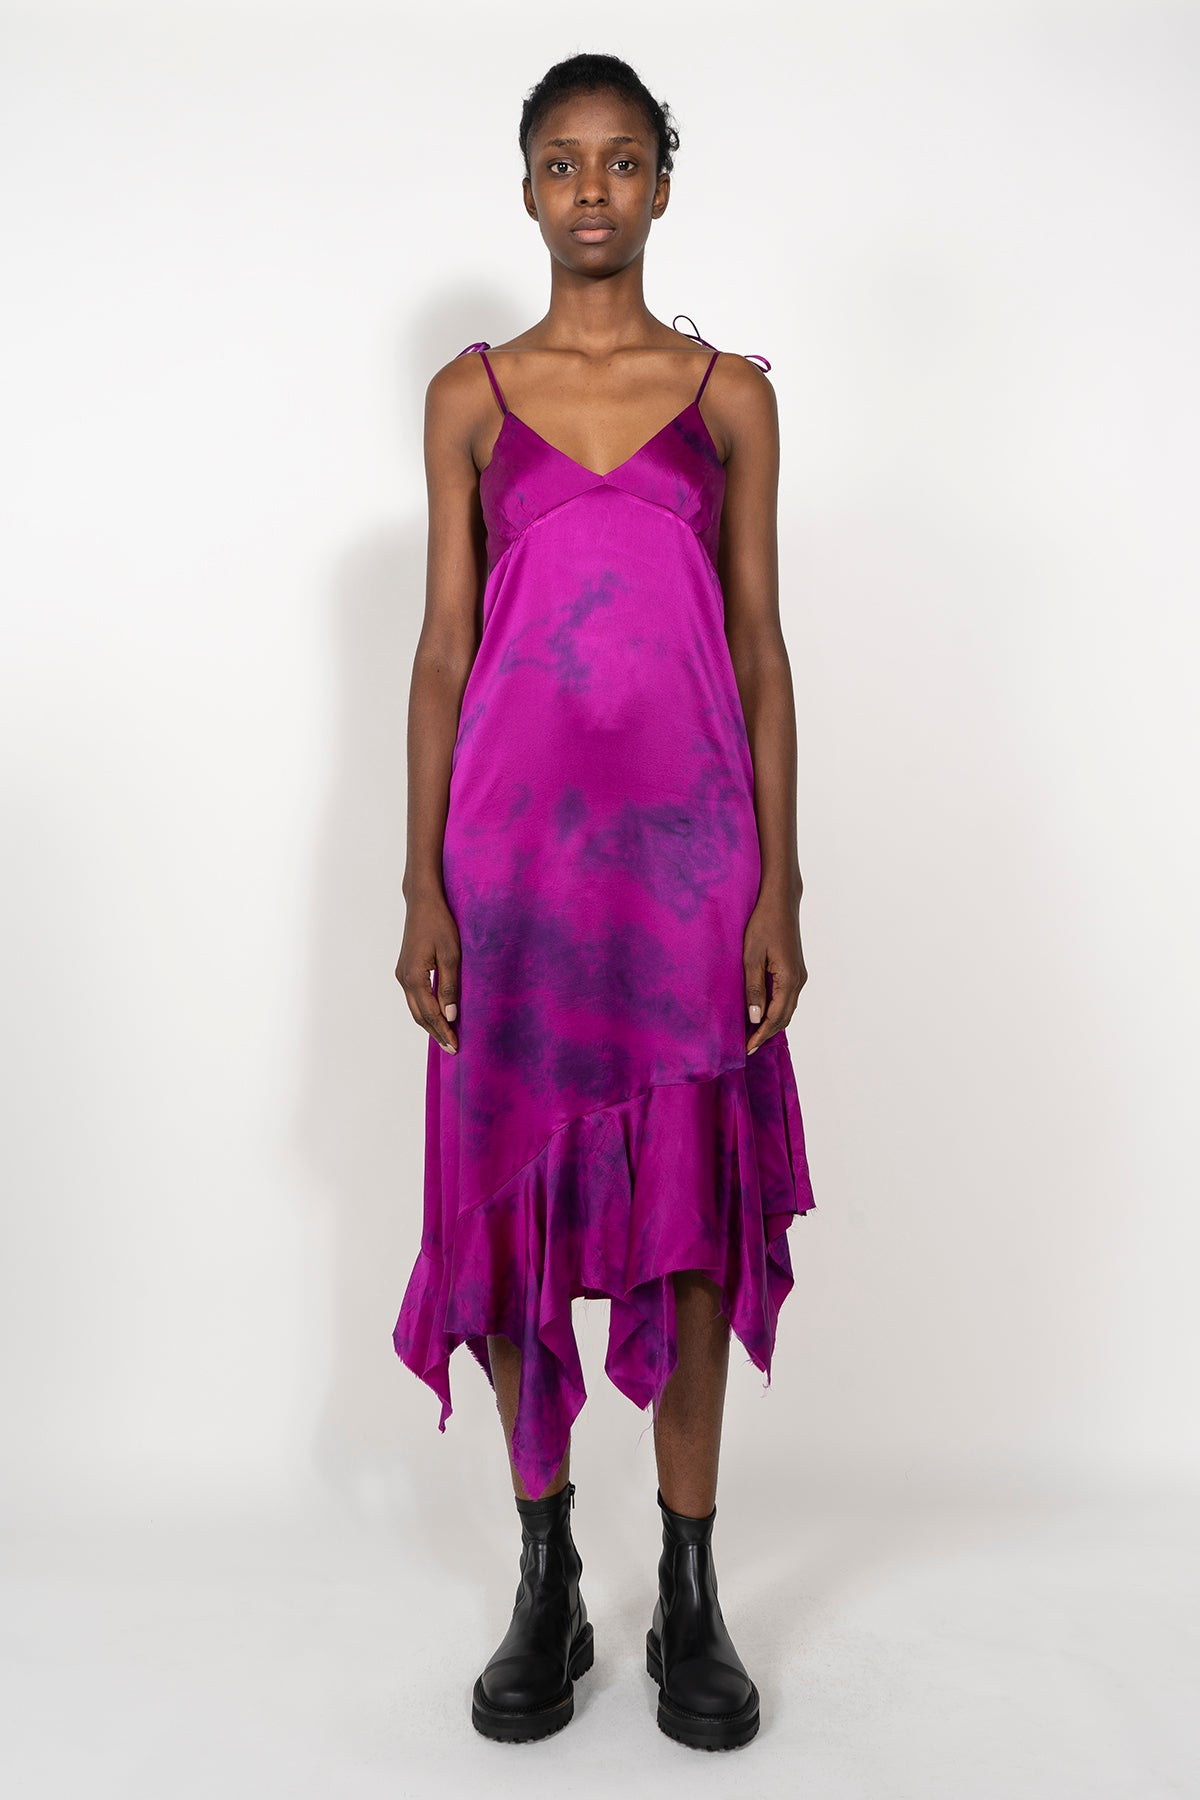 SILK PINK TIE DYE DRESS - marques-almeida